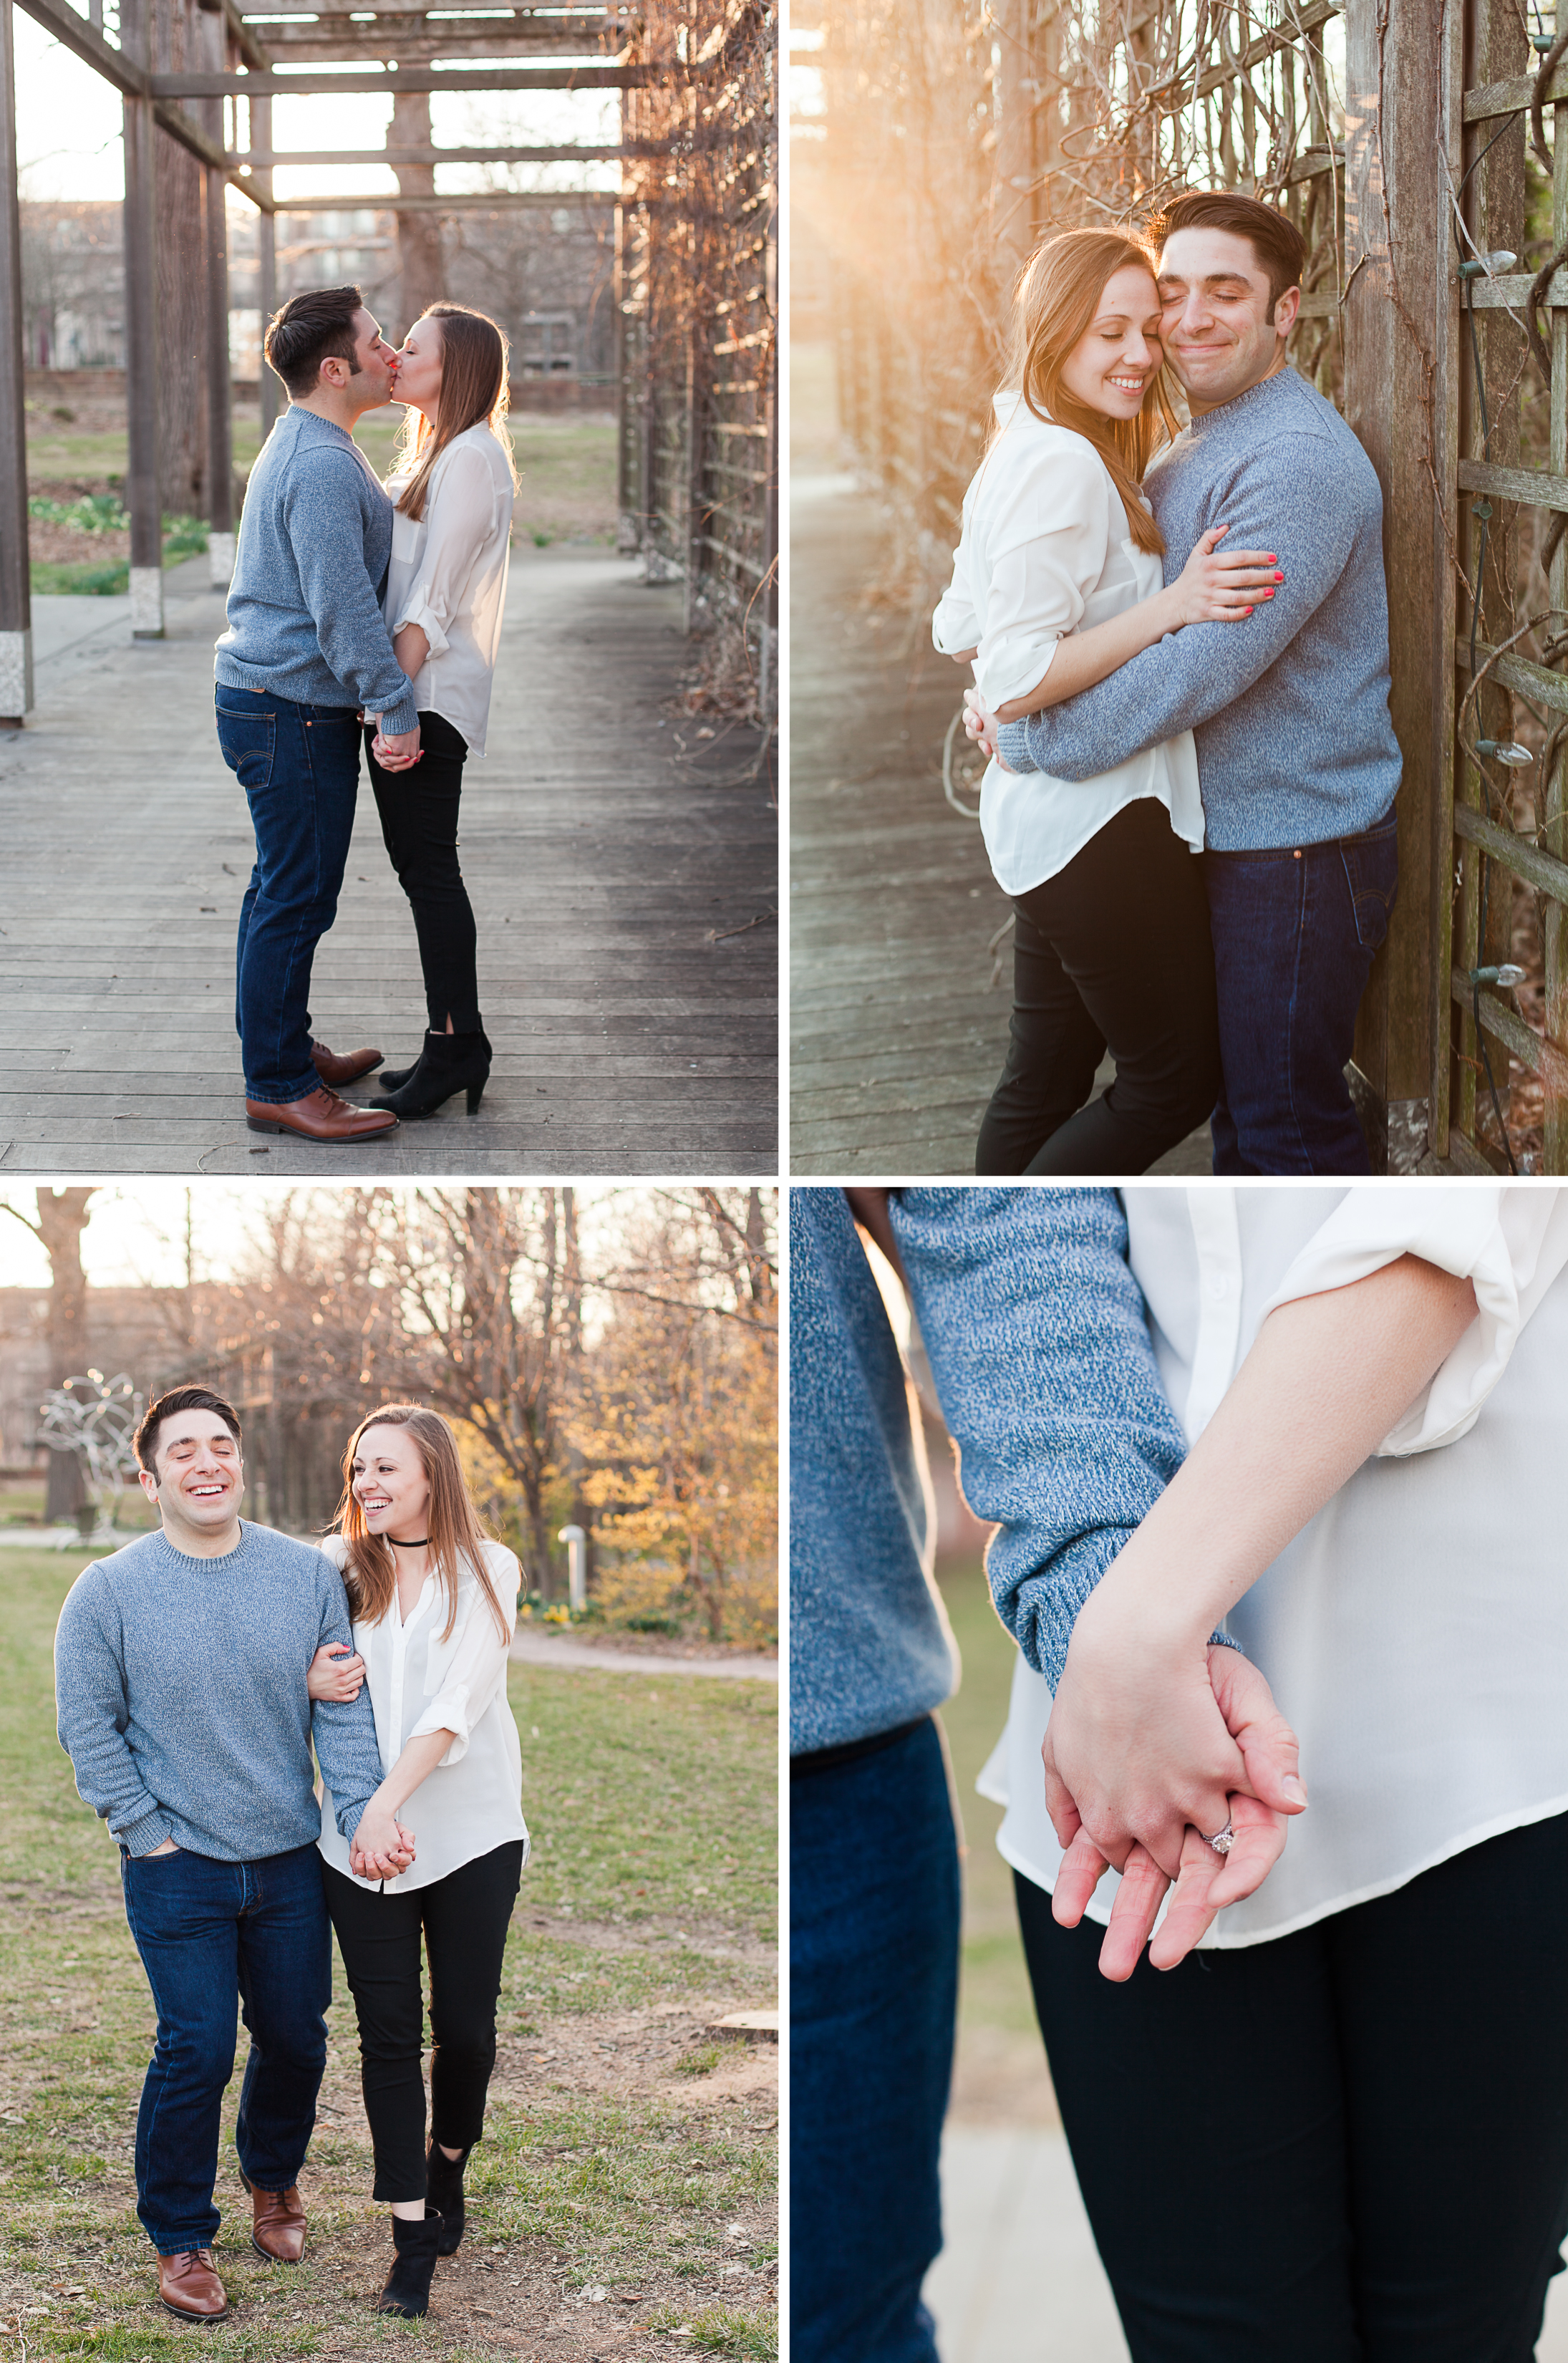 Holliday-Park-Indianapolis-Engagement-7.jpg